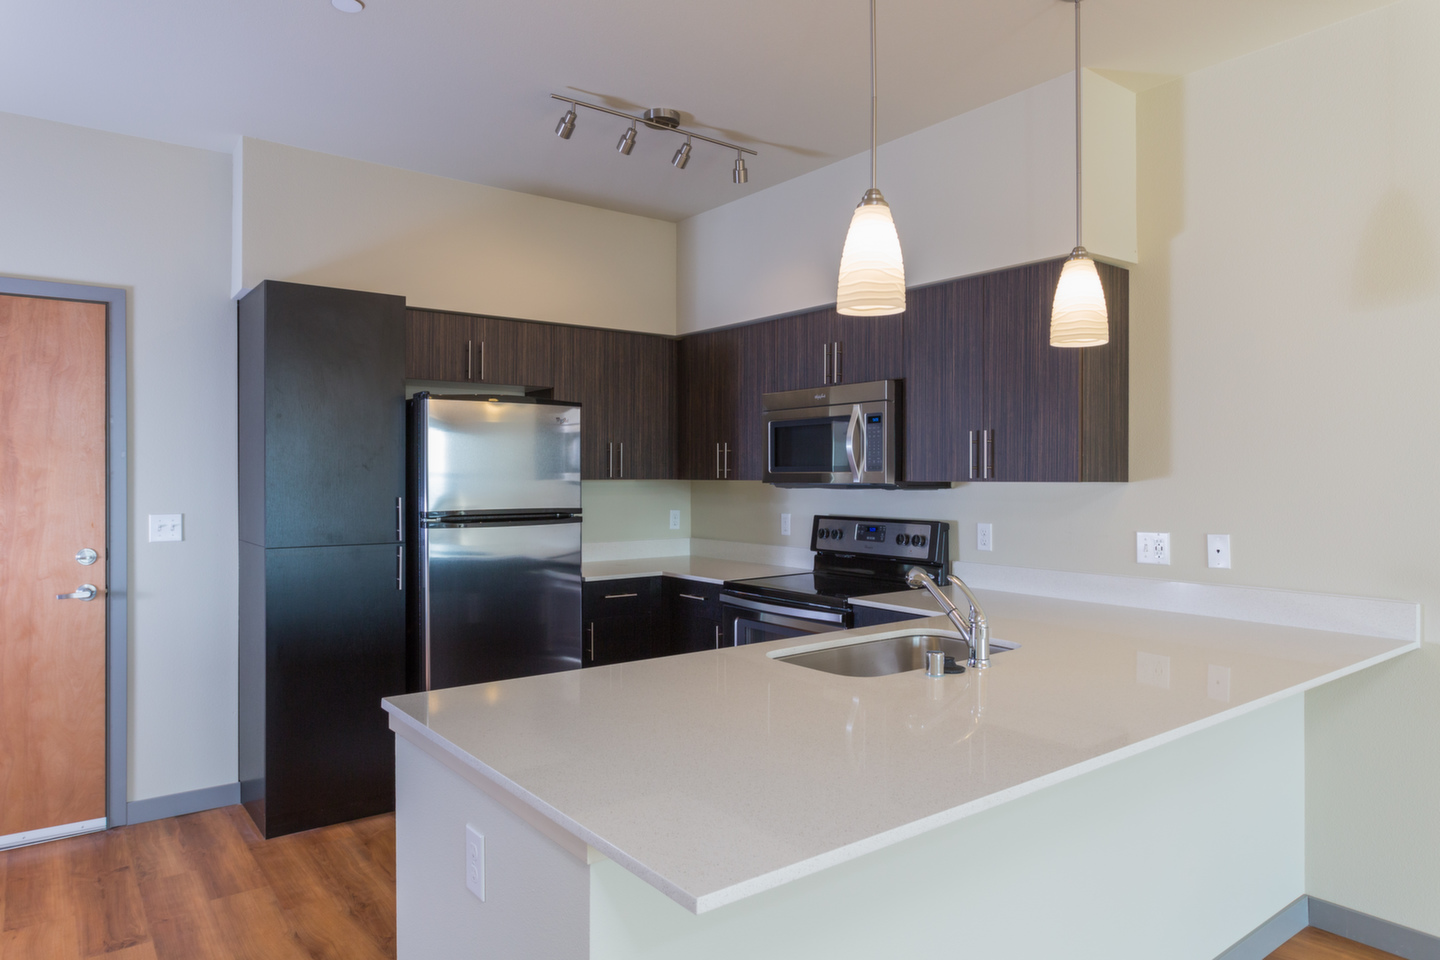 Quartz Countertops At Canvas Apartments, Seattle, WA,98119